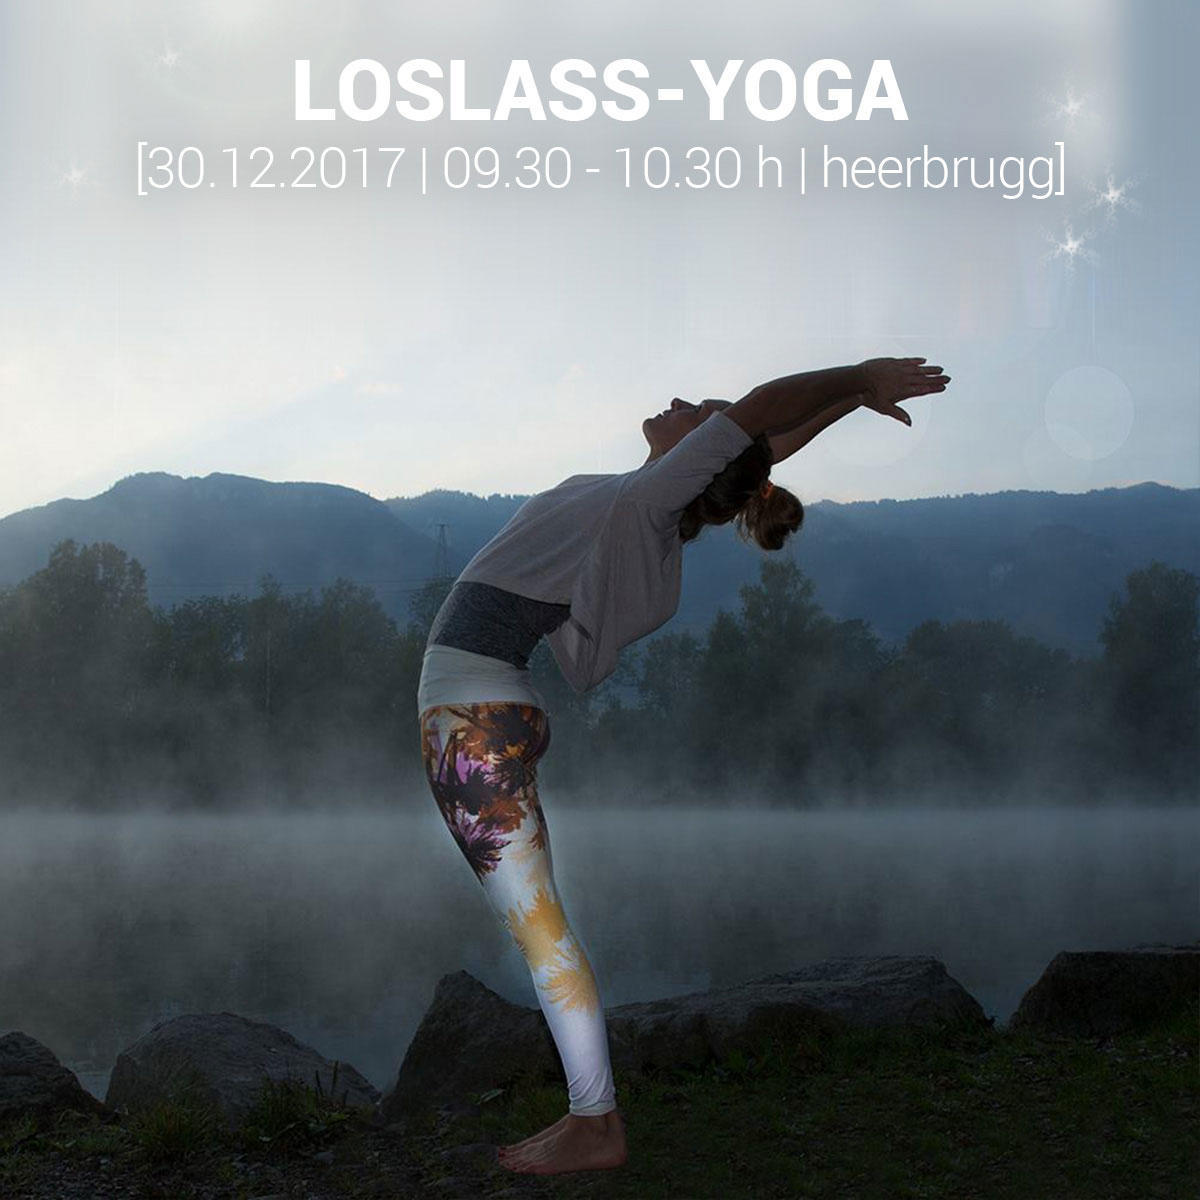 LOSLASS-YOGA